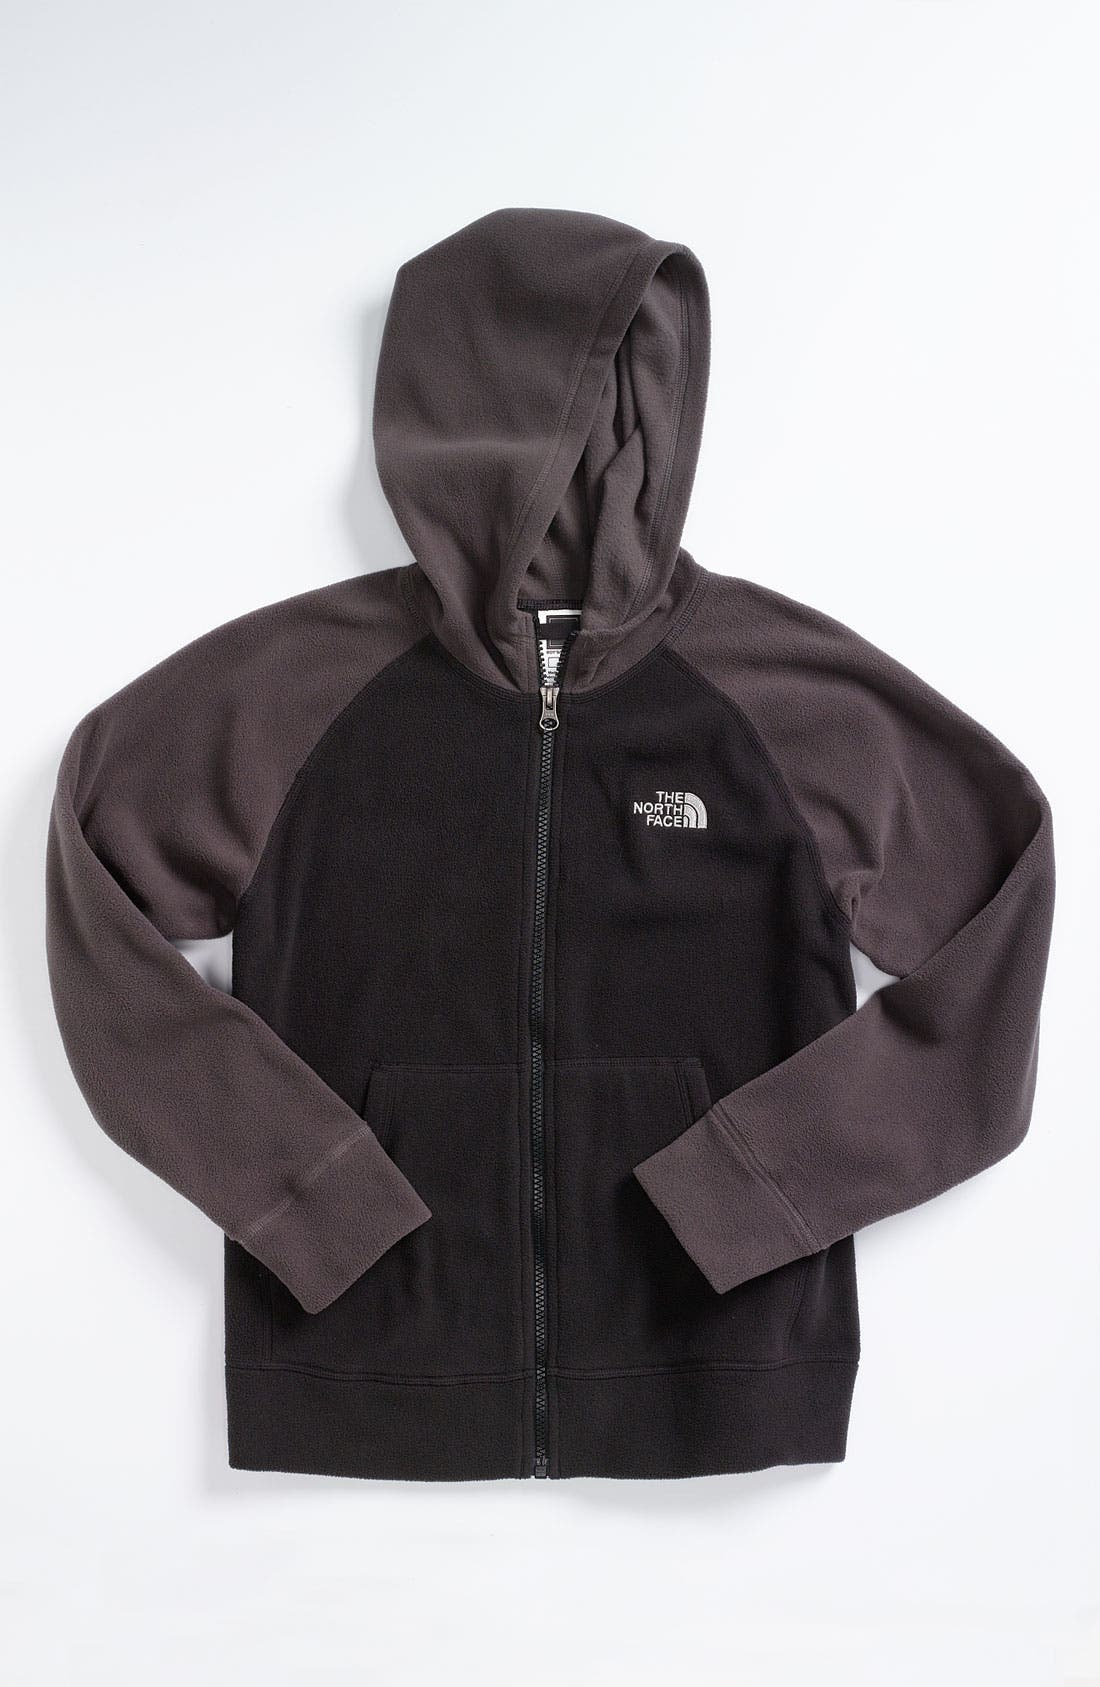 Alternate Image 1 Selected - The North Face 'Glacier' Full Zip Hoodie (Big Boys)